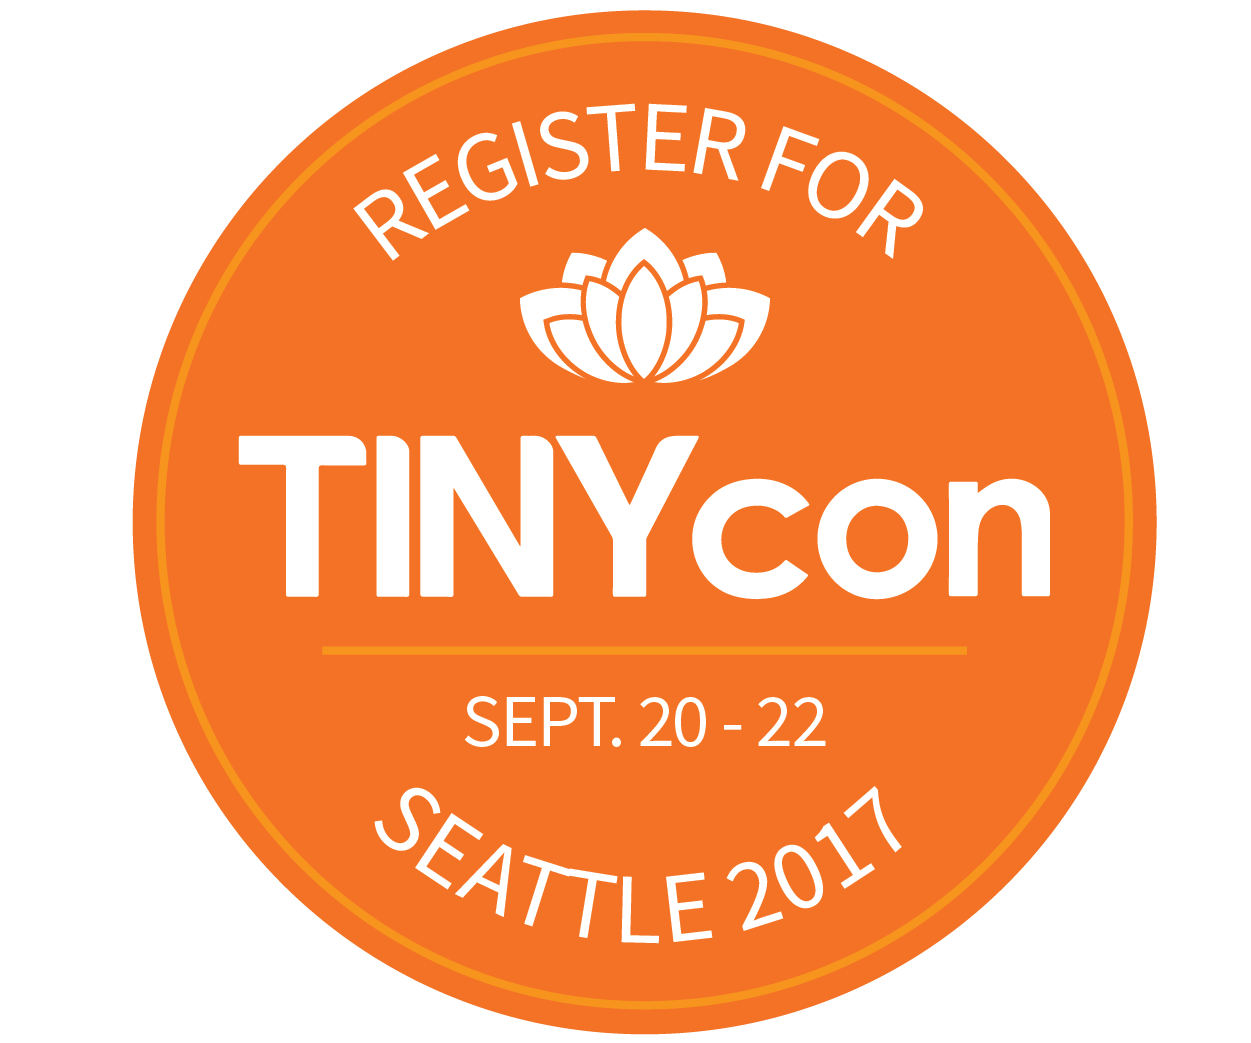 tinycon3.png